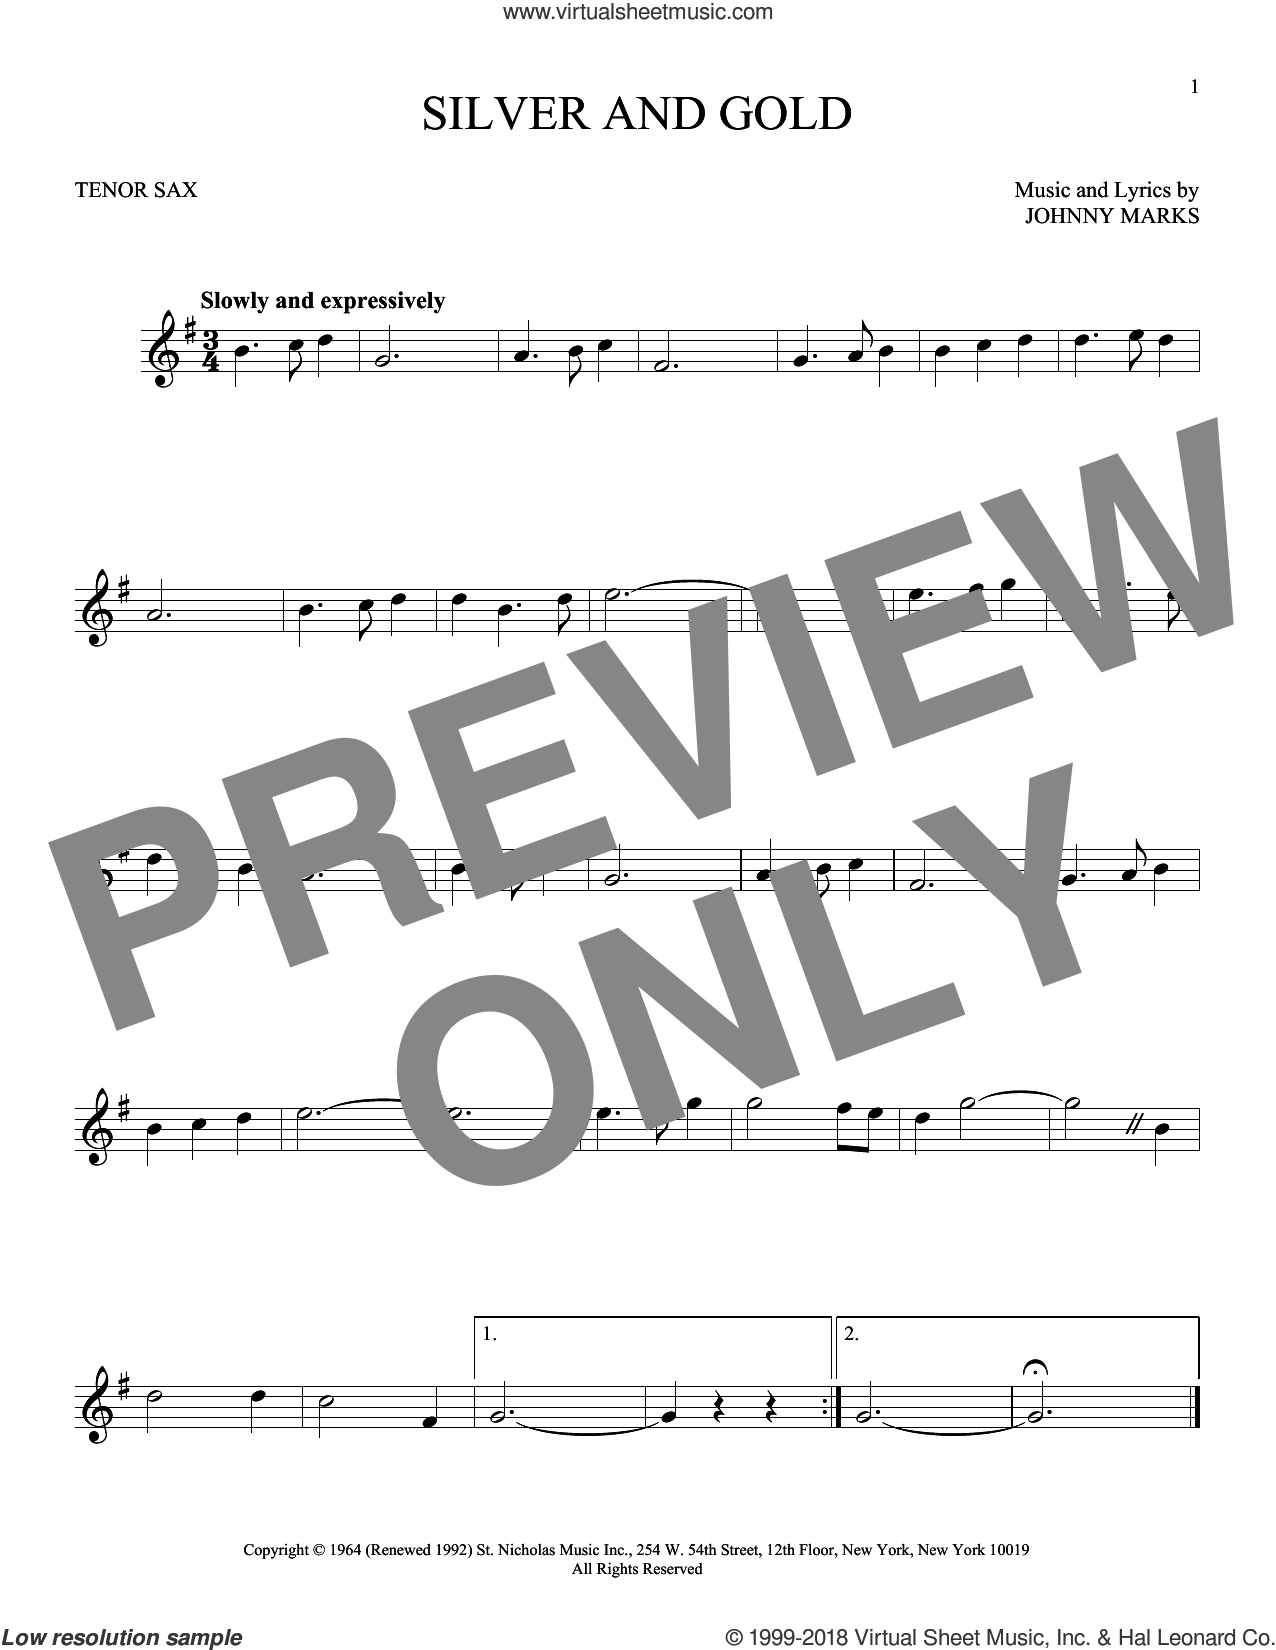 Silver And Gold sheet music for tenor saxophone solo by Johnny Marks, intermediate skill level